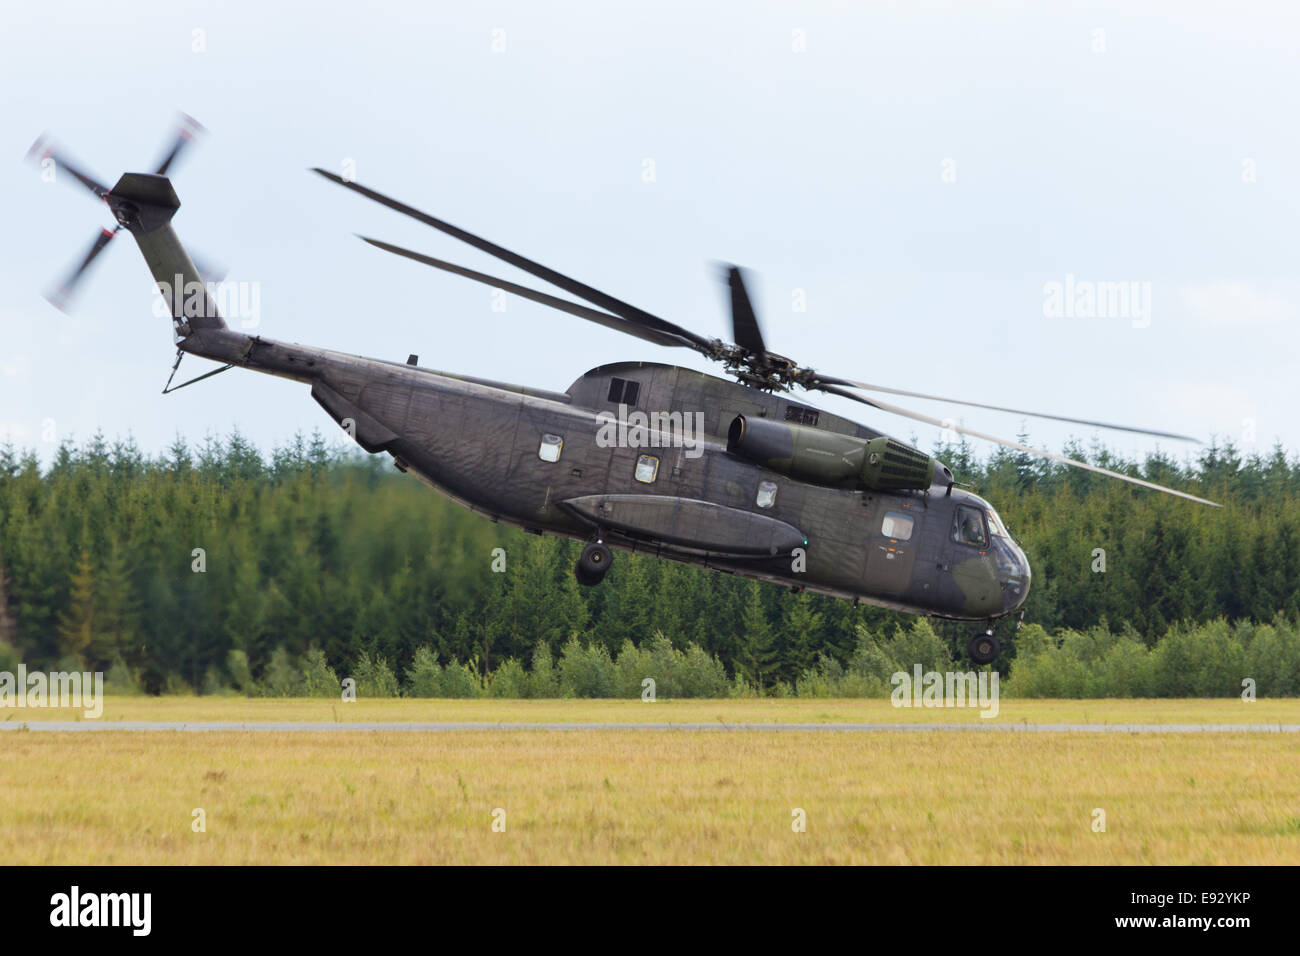 Military transport helicopter take off - Stock Image